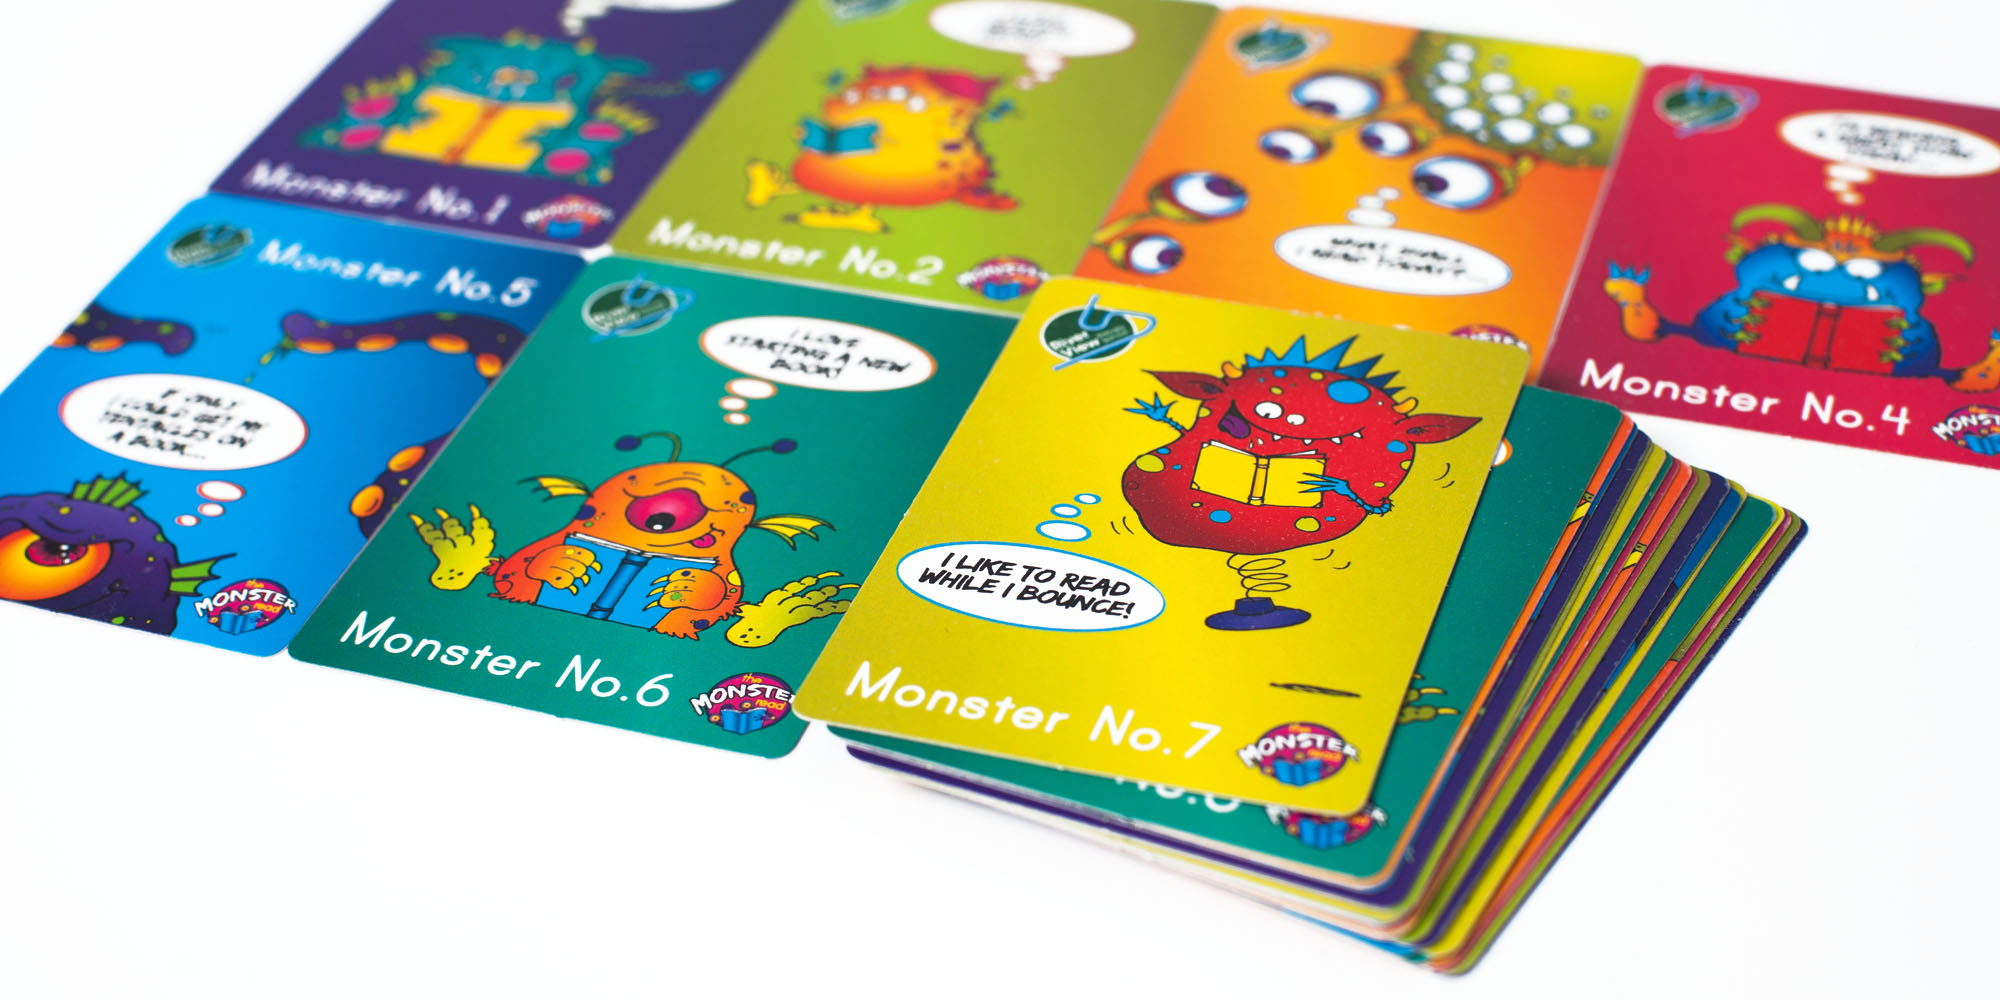 River View Primary School Monster Read collectable cards